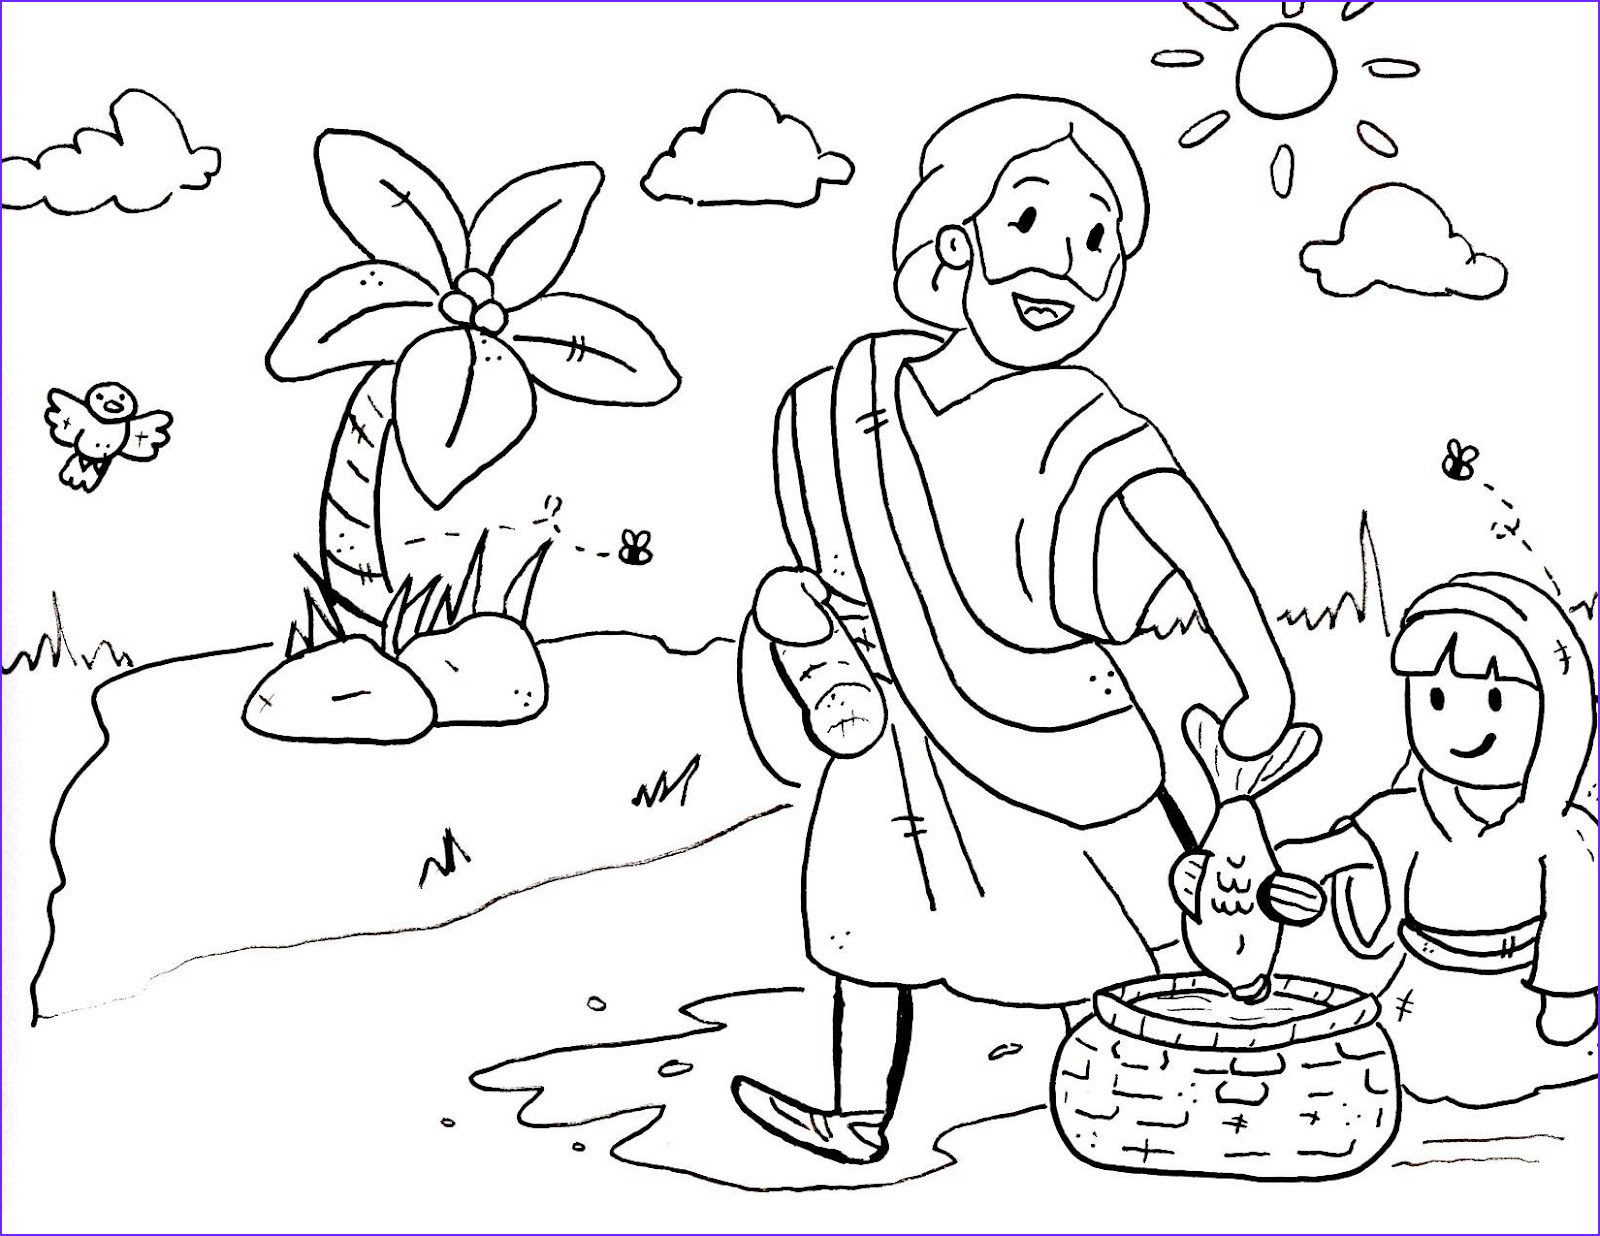 Coloring Pages Bible Best Of Photos Scraphappy Paper Crafter Free Digis Great for Sunday